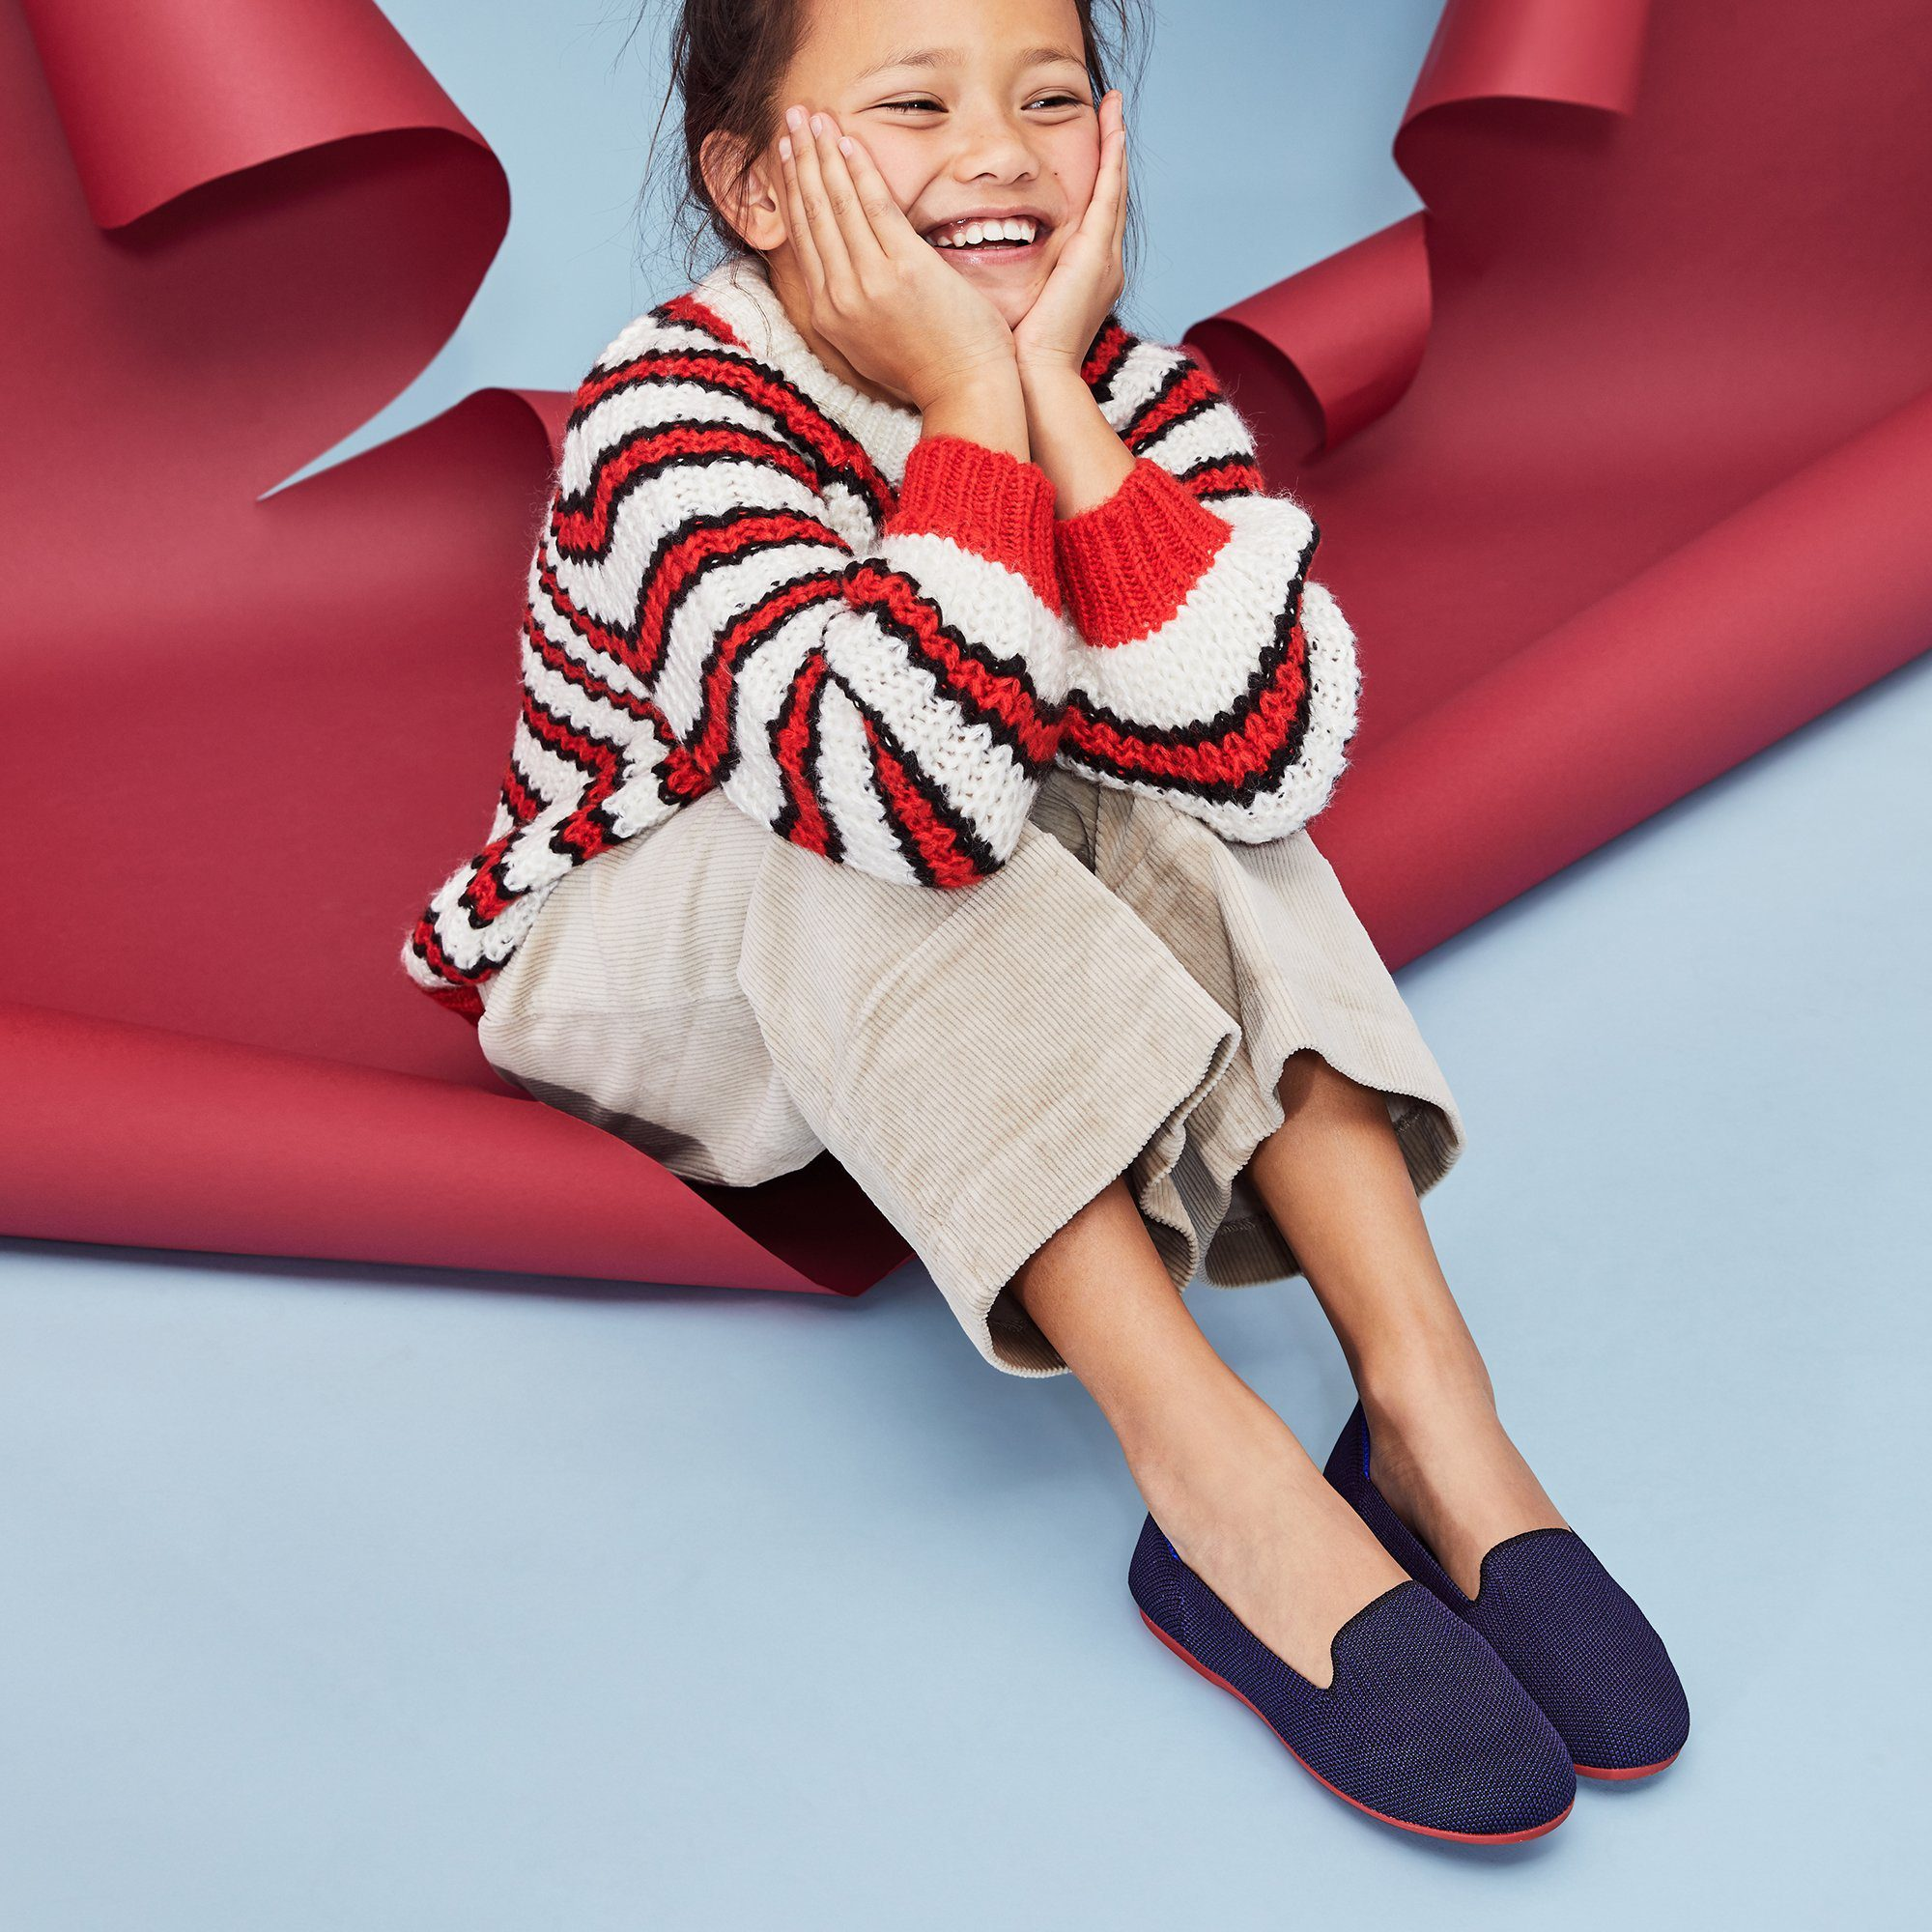 Sustainable Kids Slip on Shoes for Everyday Adventures